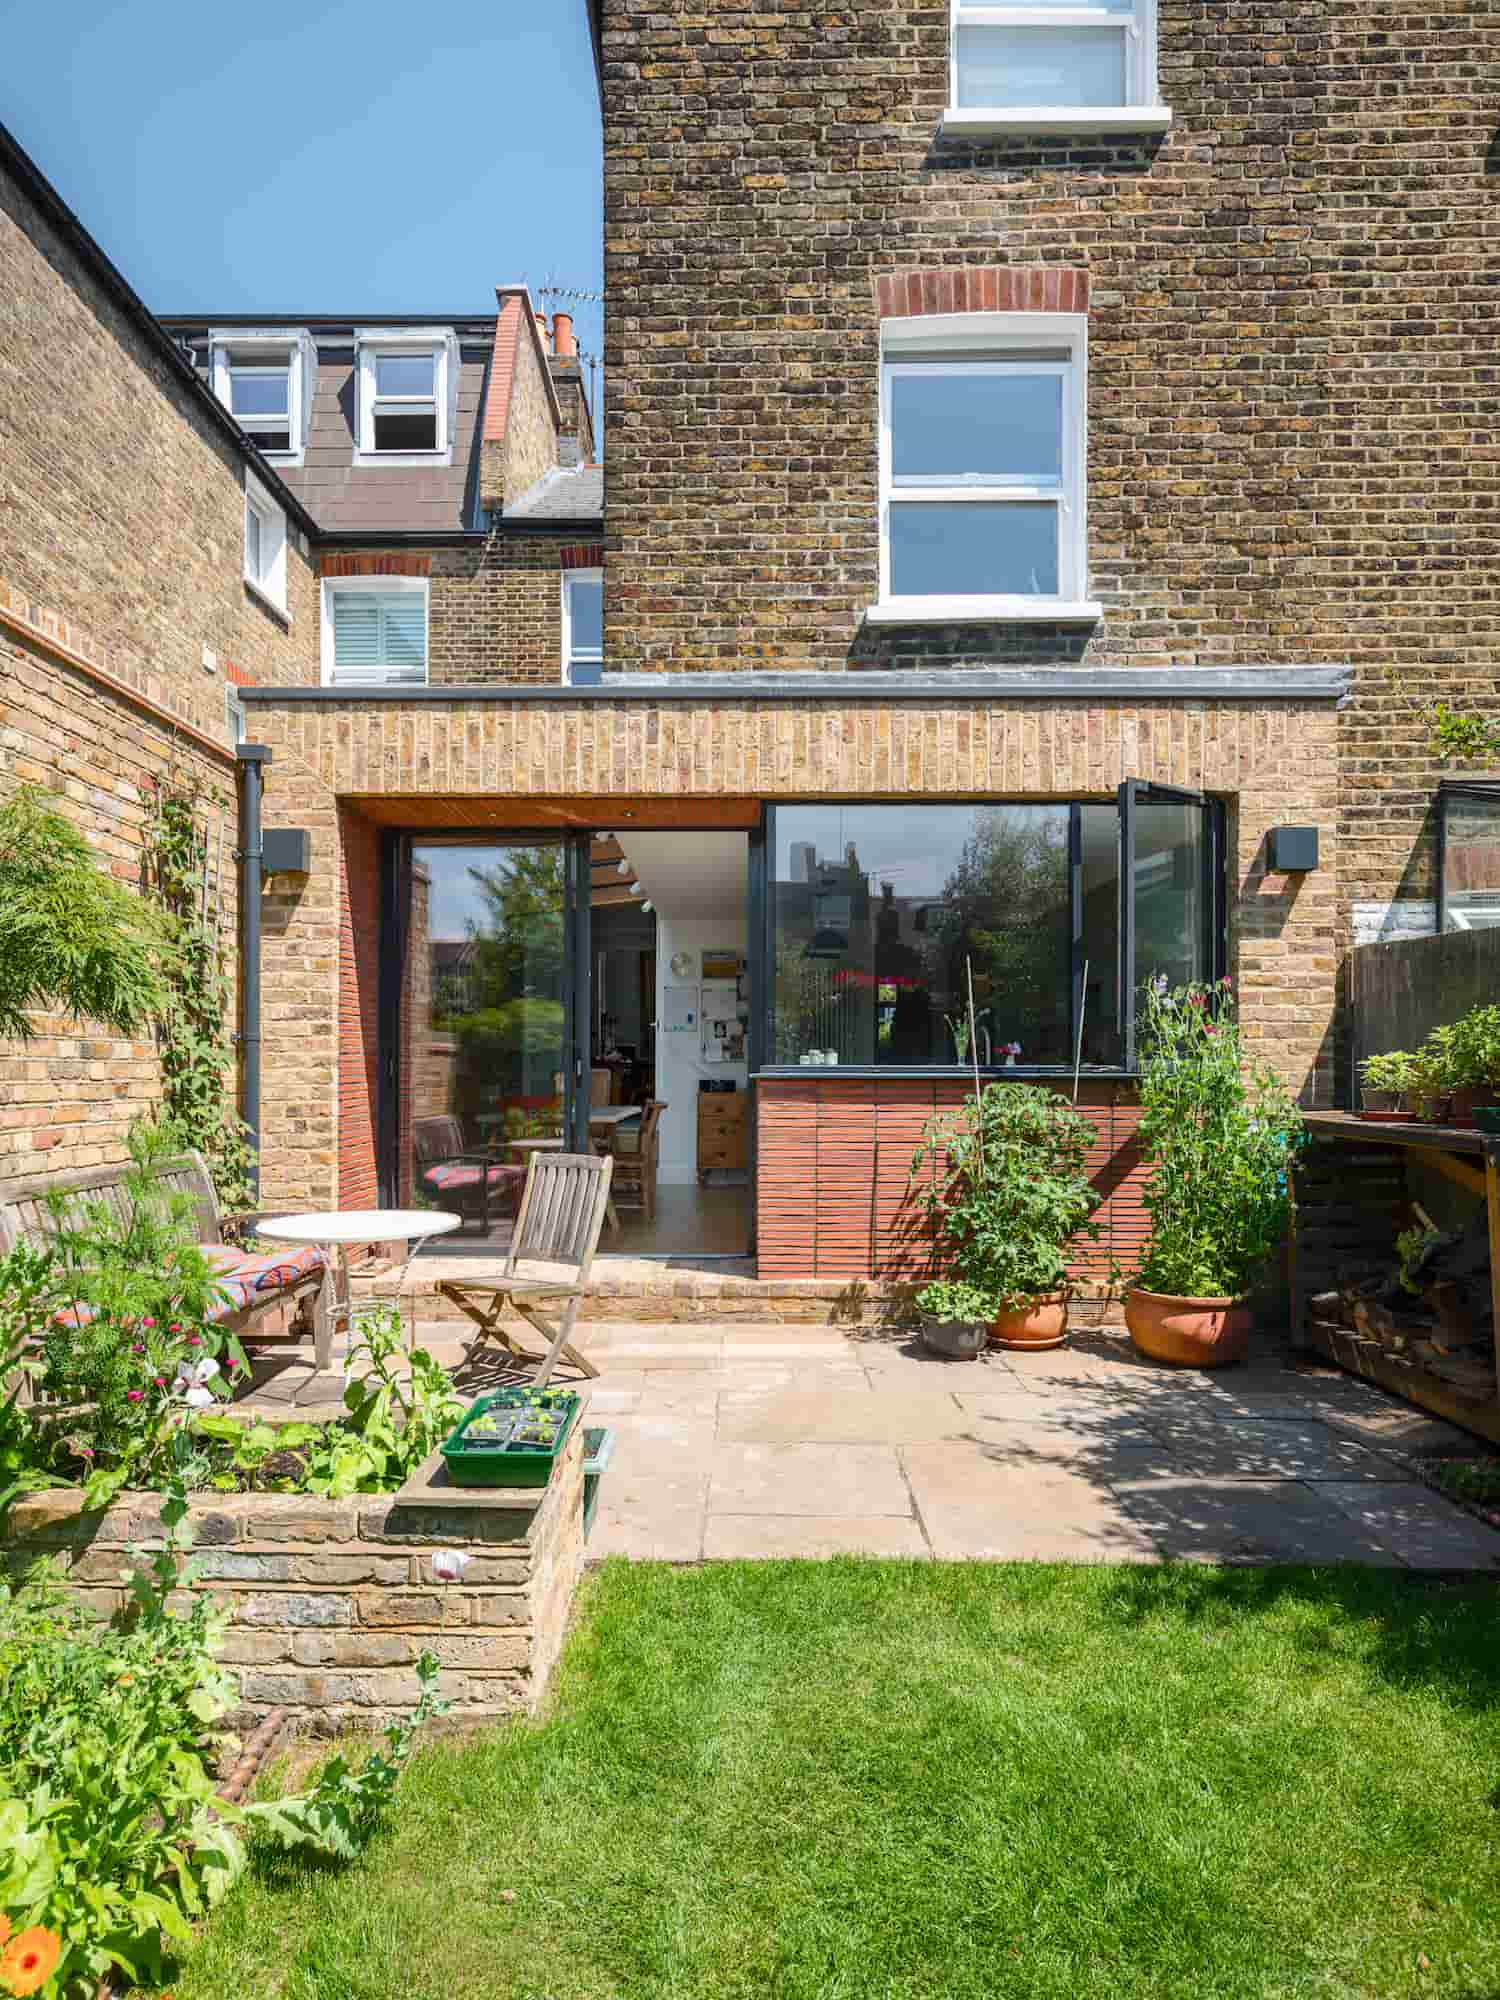 Cosy kitchen extension with well kept garden